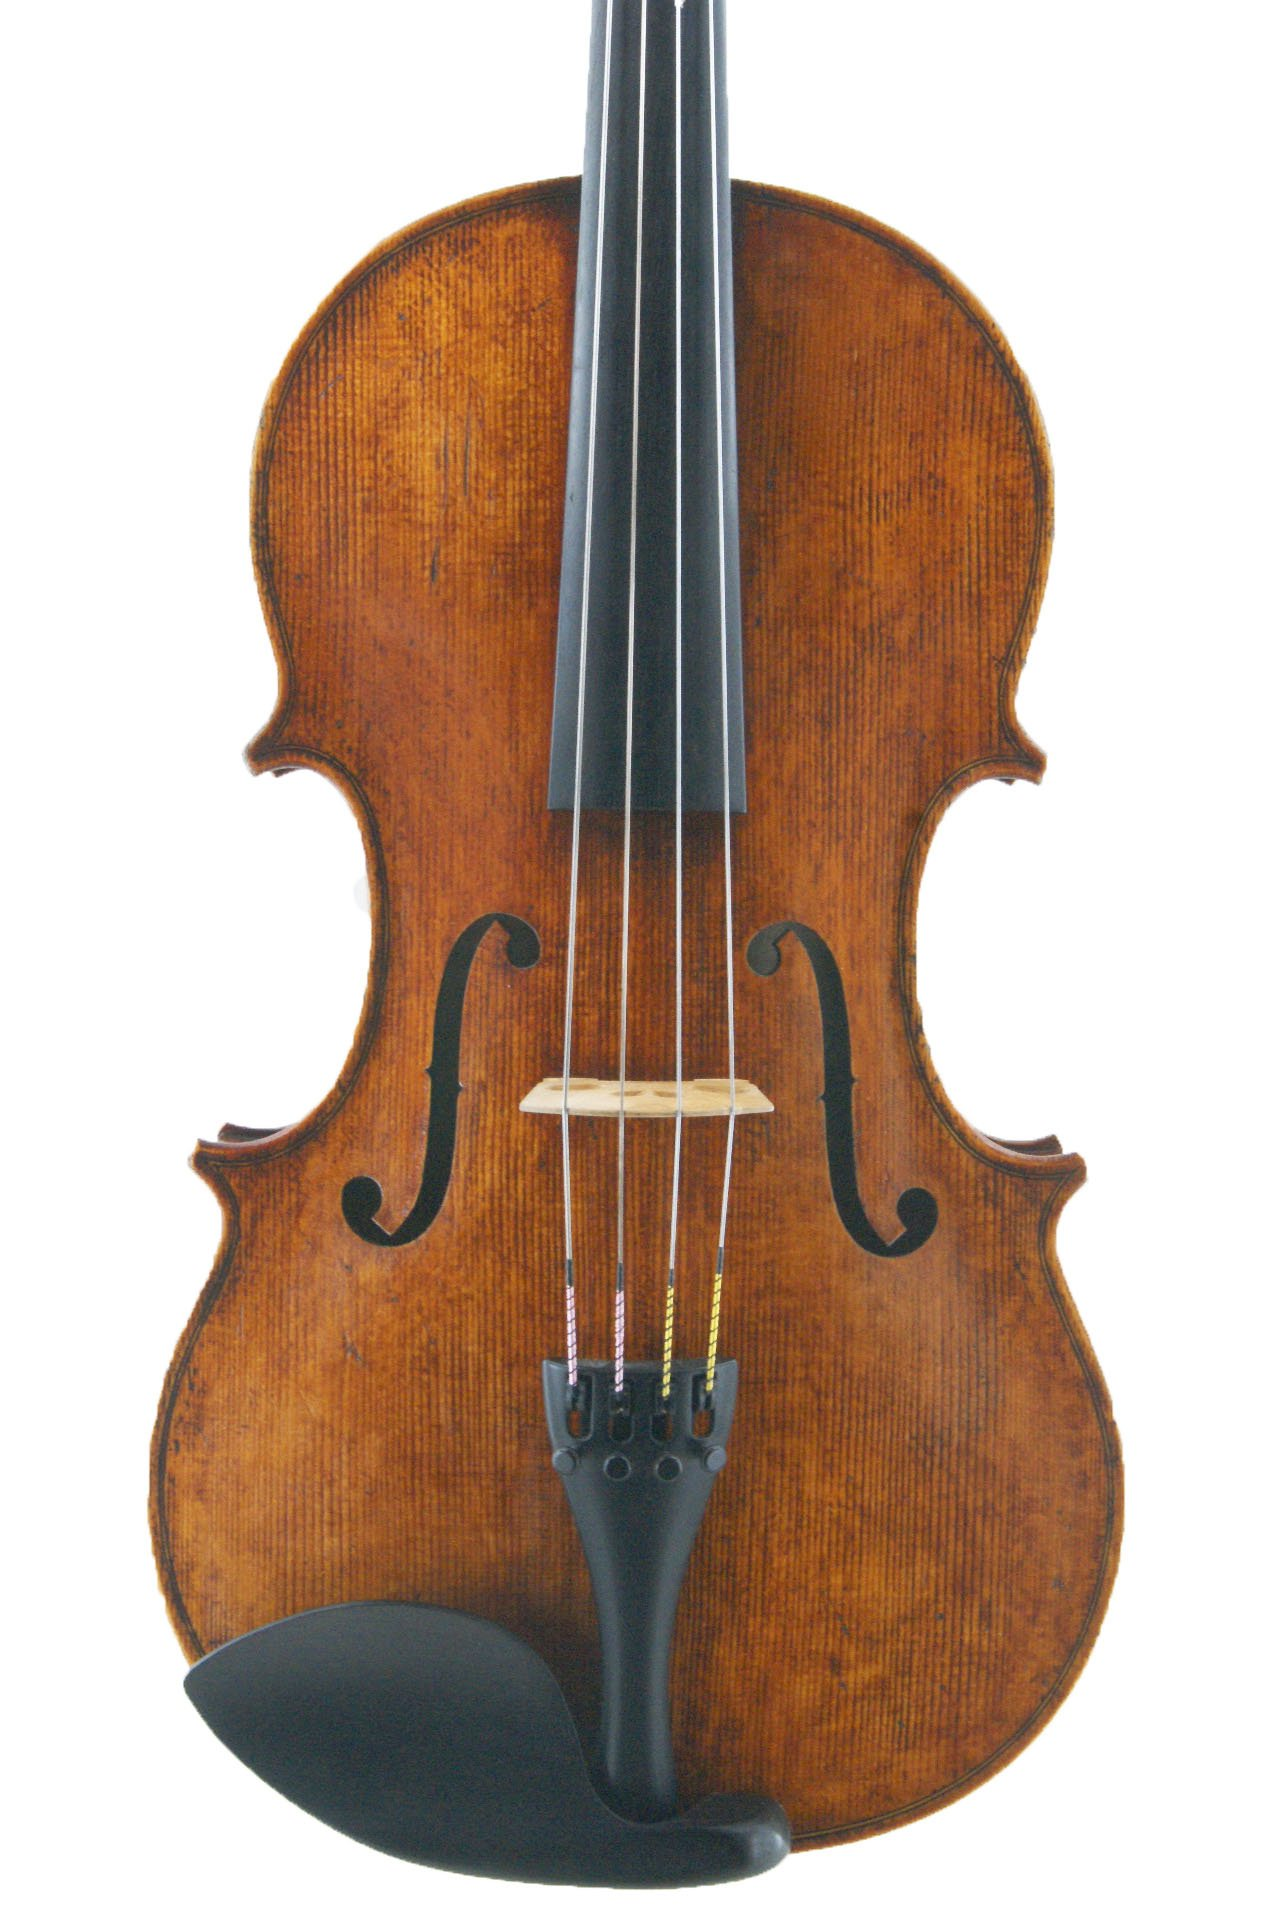 front of new viola modelled on Andrea Guarneri